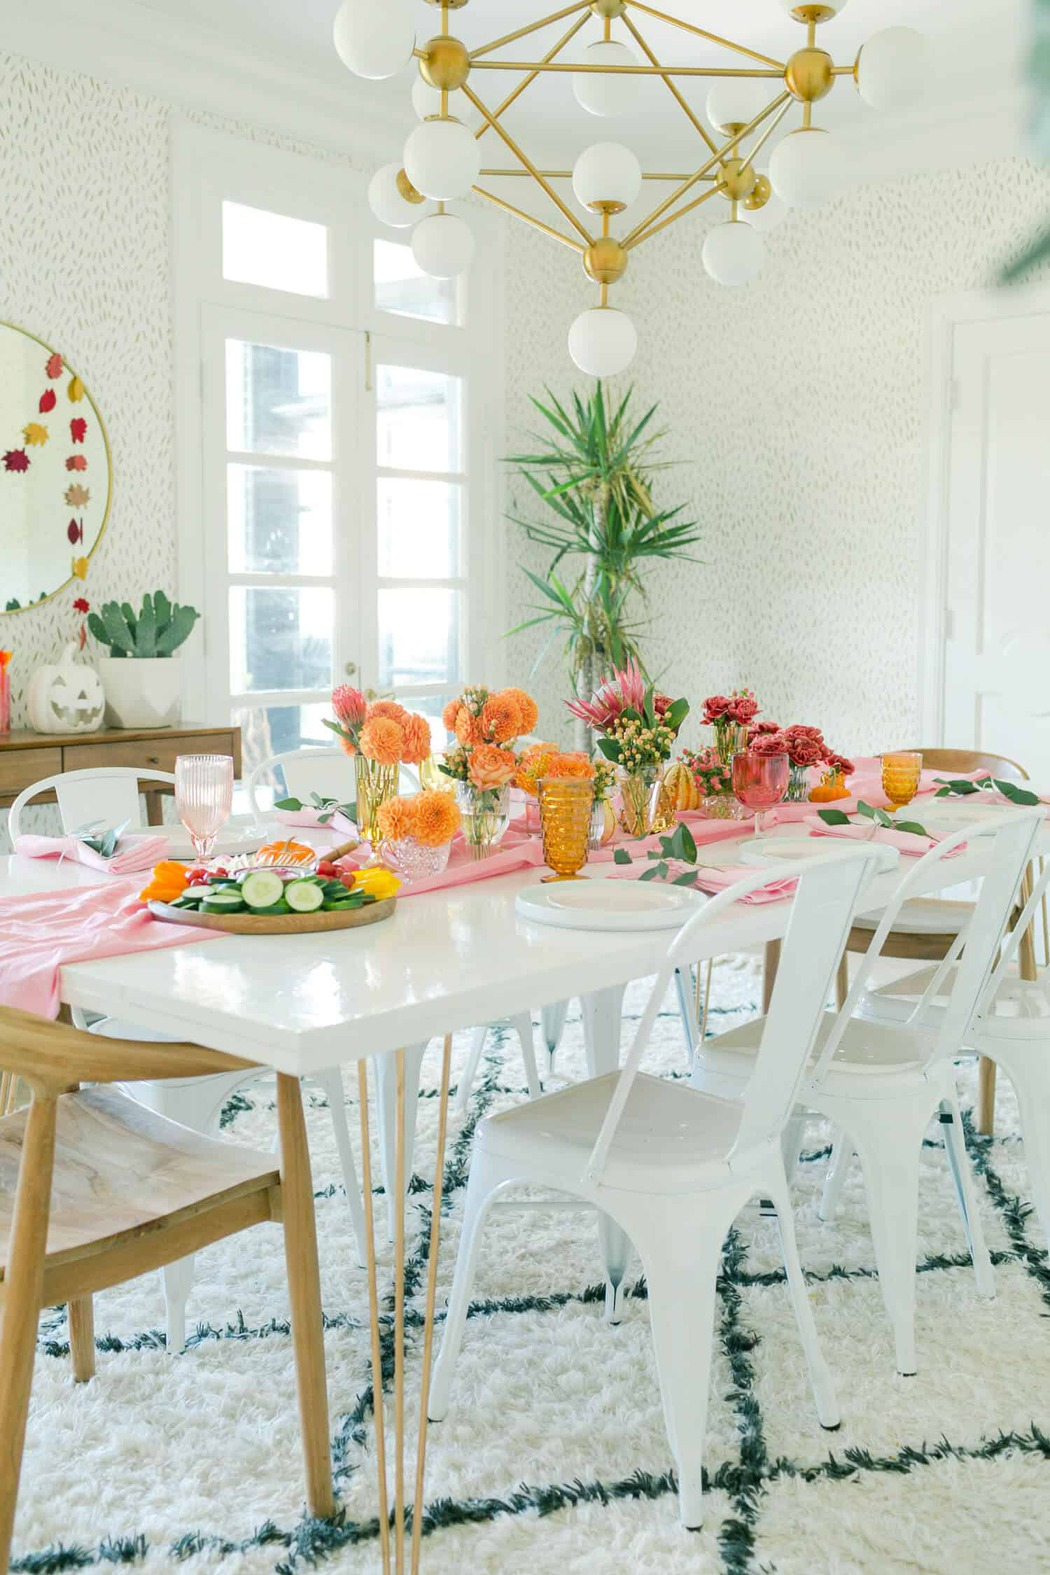 Thanksgiving tablescape with a pink runner, coloured glassware, and orange and magenta flowers